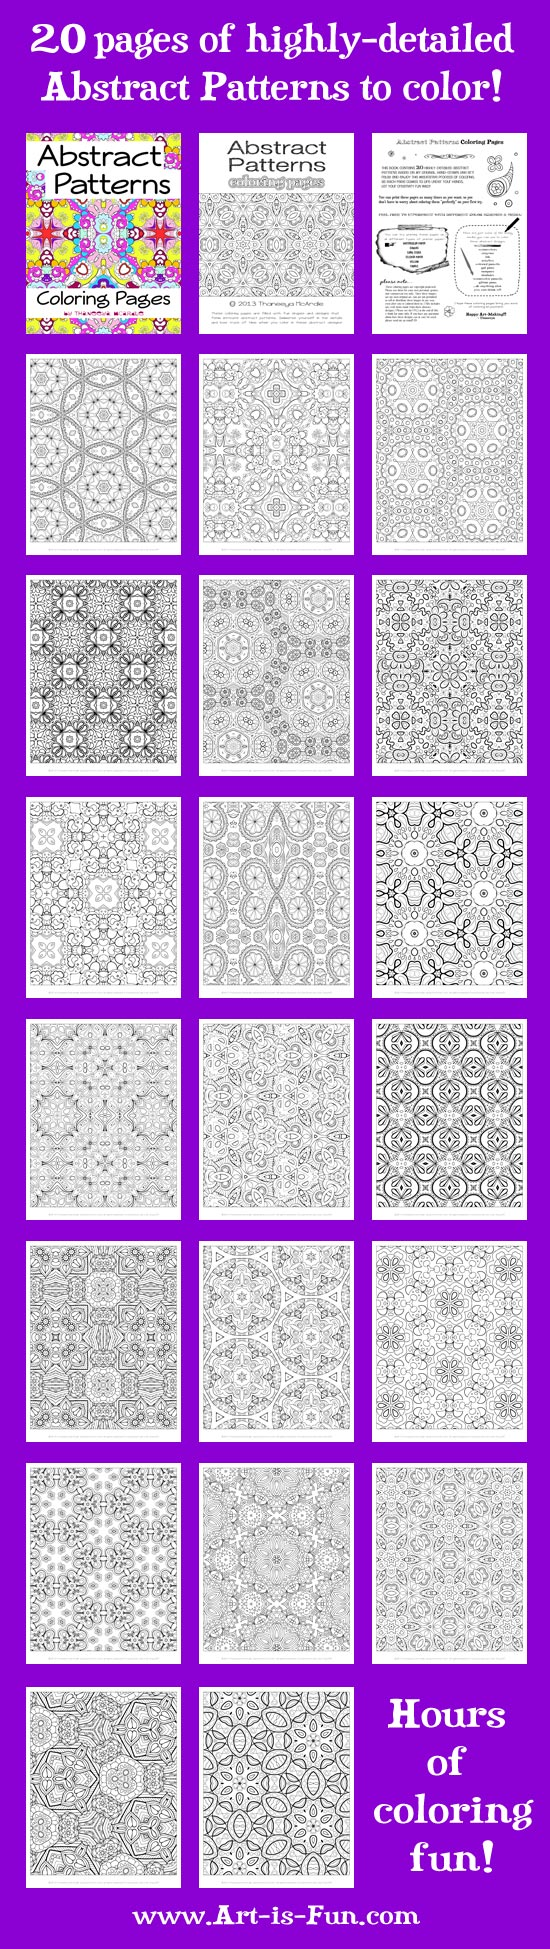 Free Abstract Pattern Coloring Page: Detailed Psychedelic Art by Thaneeya McArdle Art is Fun